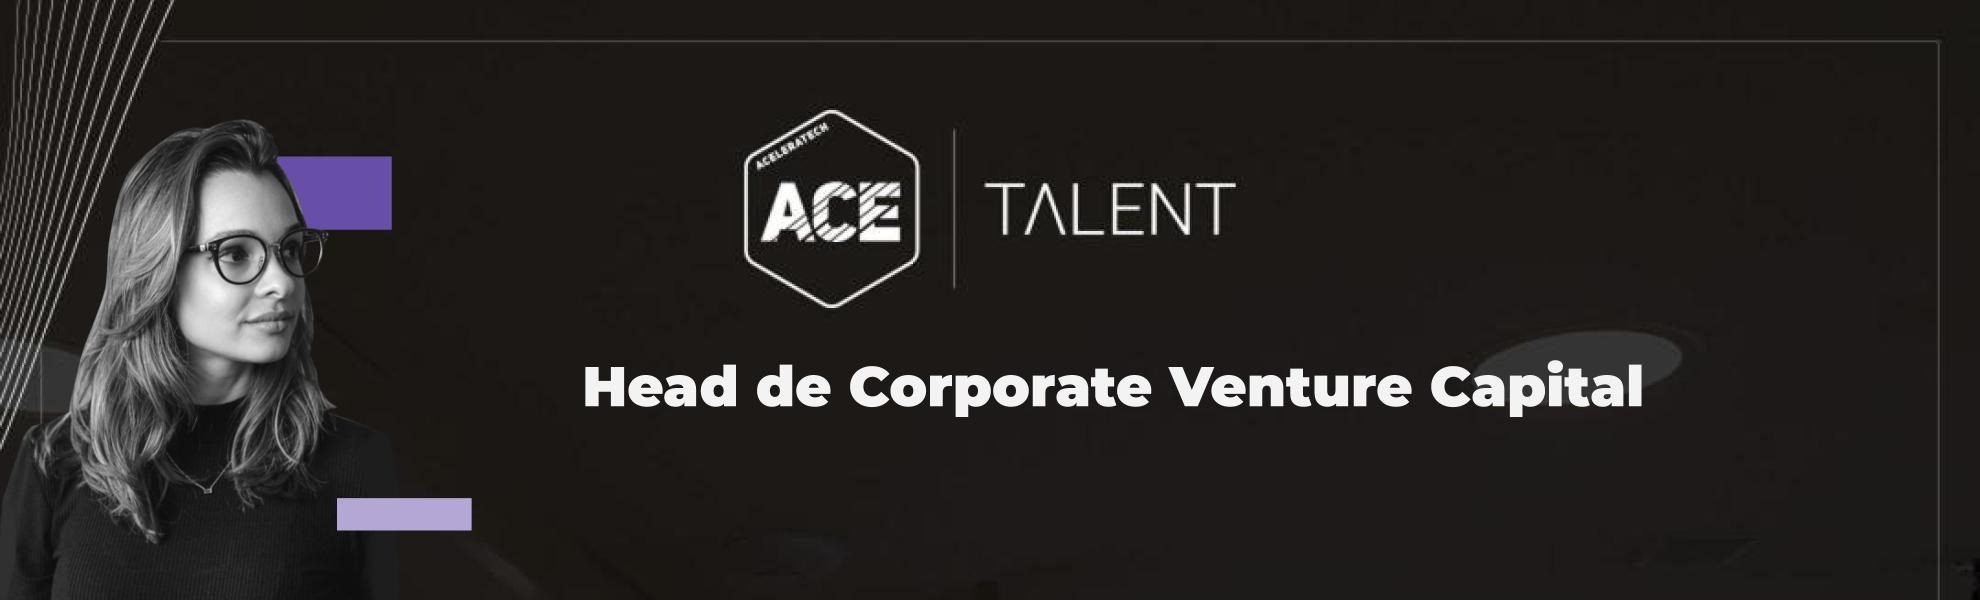 Head de Corporate Venture Capital